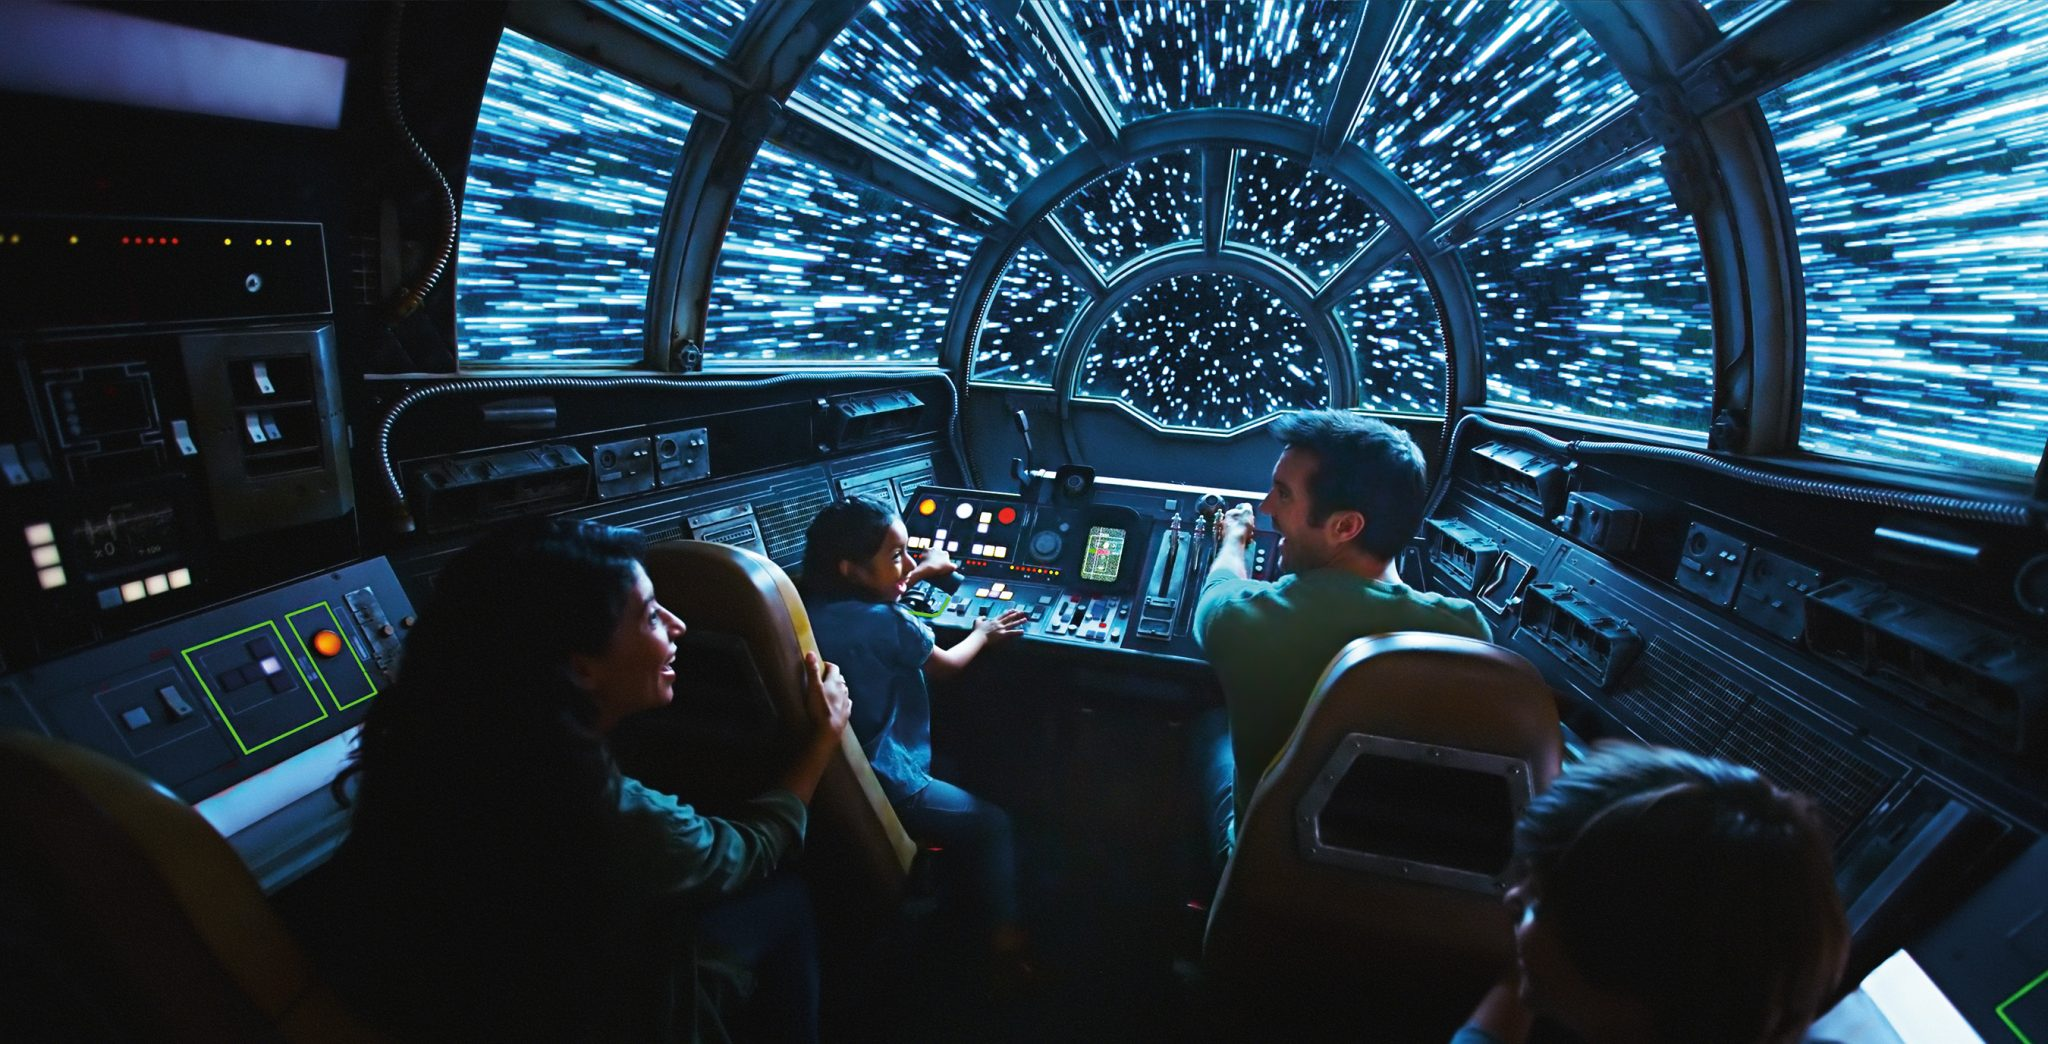 Inside Millennium Falcon: Smugglers Run, Disney guests will take the controls in one of three unique and critical roles aboard the fastest ship in the galaxy when Star Wars: Galaxy's Edge opens in summer 2019 at Disneyland Resort in California, and fall 2019 at Walt Disney World Resort in Florida. (Disney Parks)